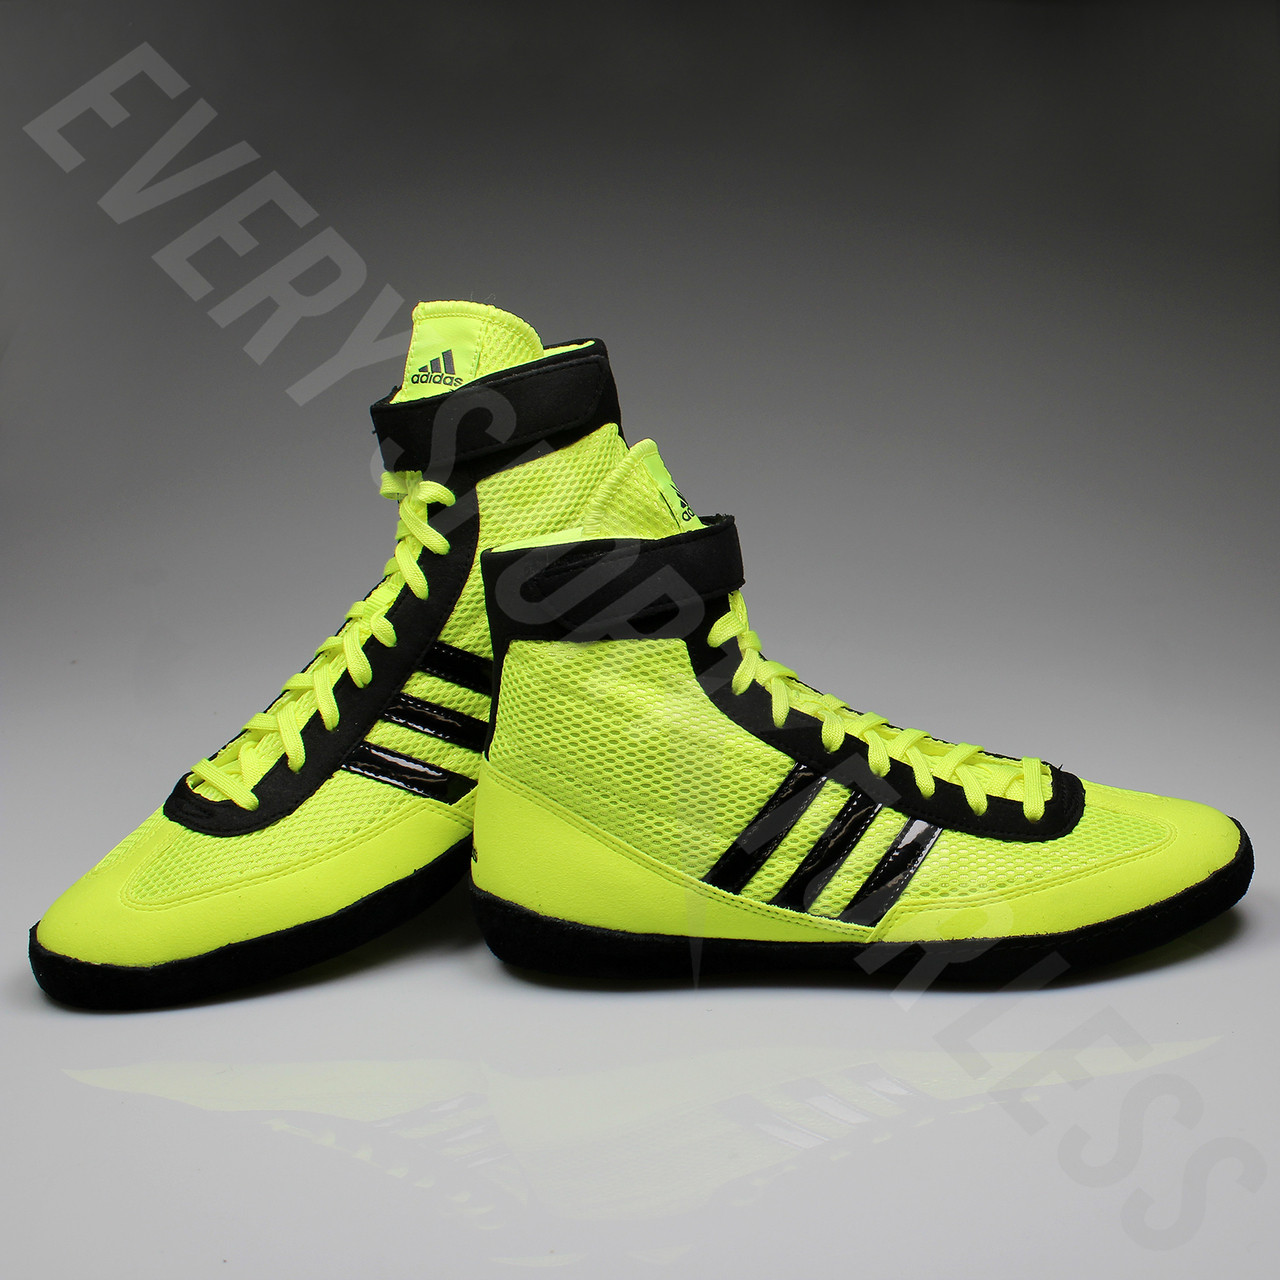 b725b77256a ... Adidas Combat Speed 4 Senior Wrestling Shoes S77933 - Yellow